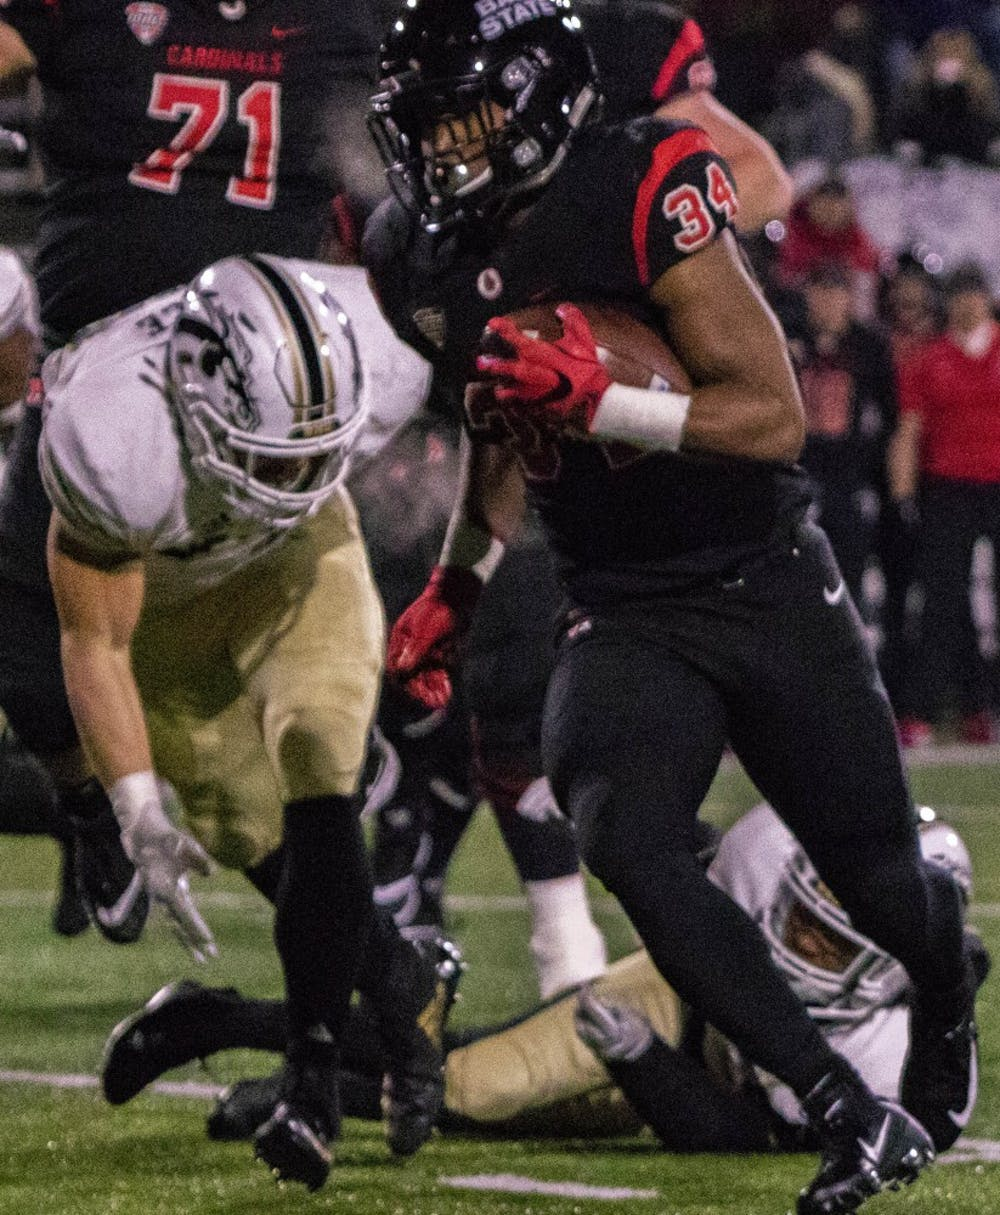 <p>Ball State redshirt junior running back James Gilbert breaks away from Western Michigan defenders late in the second quarter Tuesday, Nov. 13 at Scheumann Stadium. The Cardinals won the game, 42-41 in overtime. <strong>Sharpe L. Marshall,DN</strong></p>